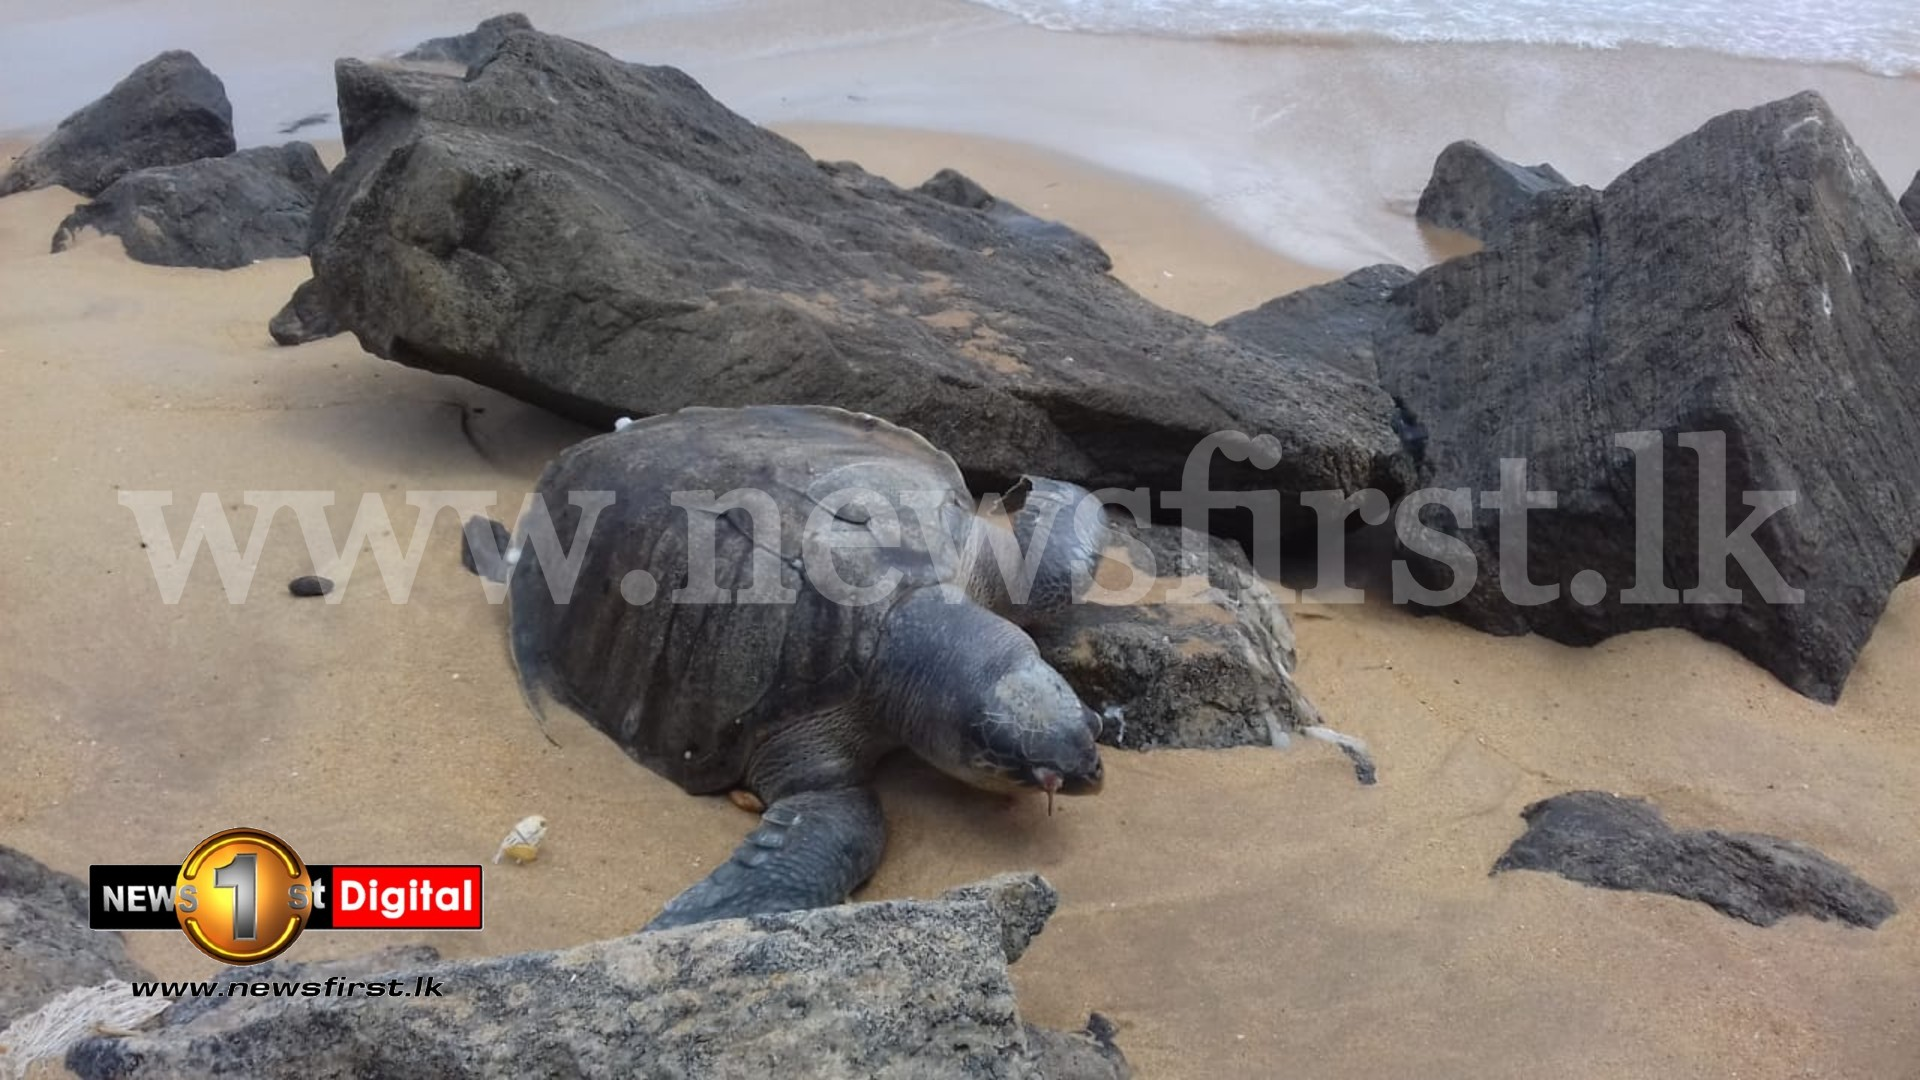 Chemical Leak responsible for Sea Turtle deaths: Minister